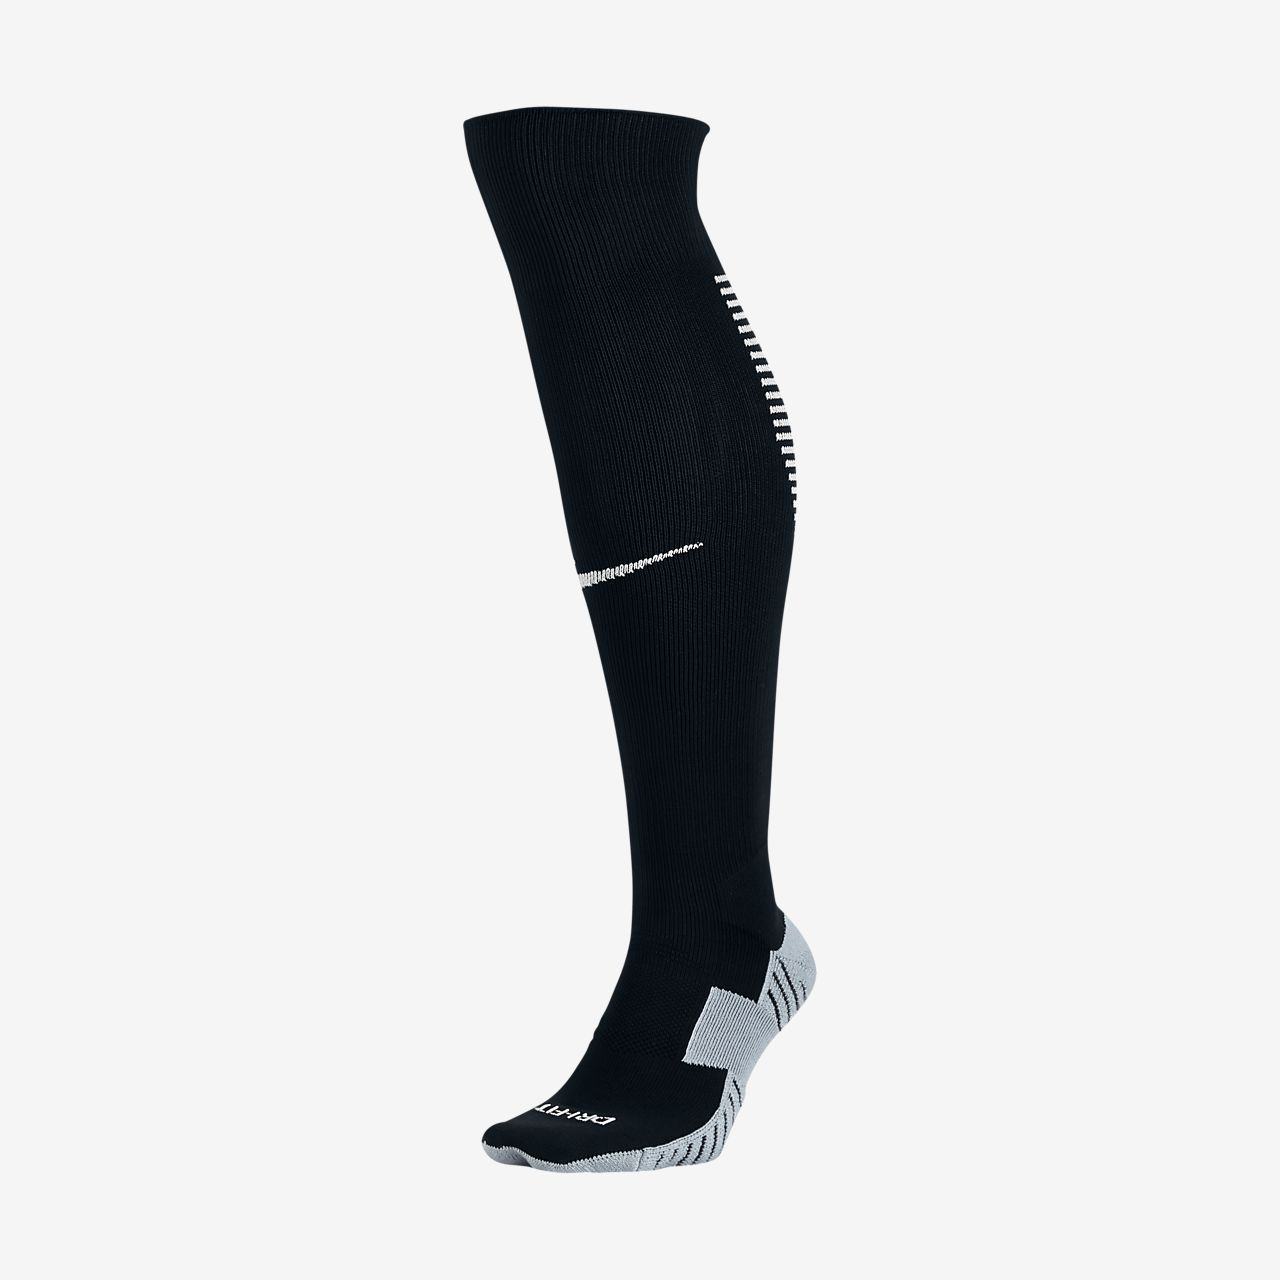 Nike Stadium Over-the-Calf Football Socks